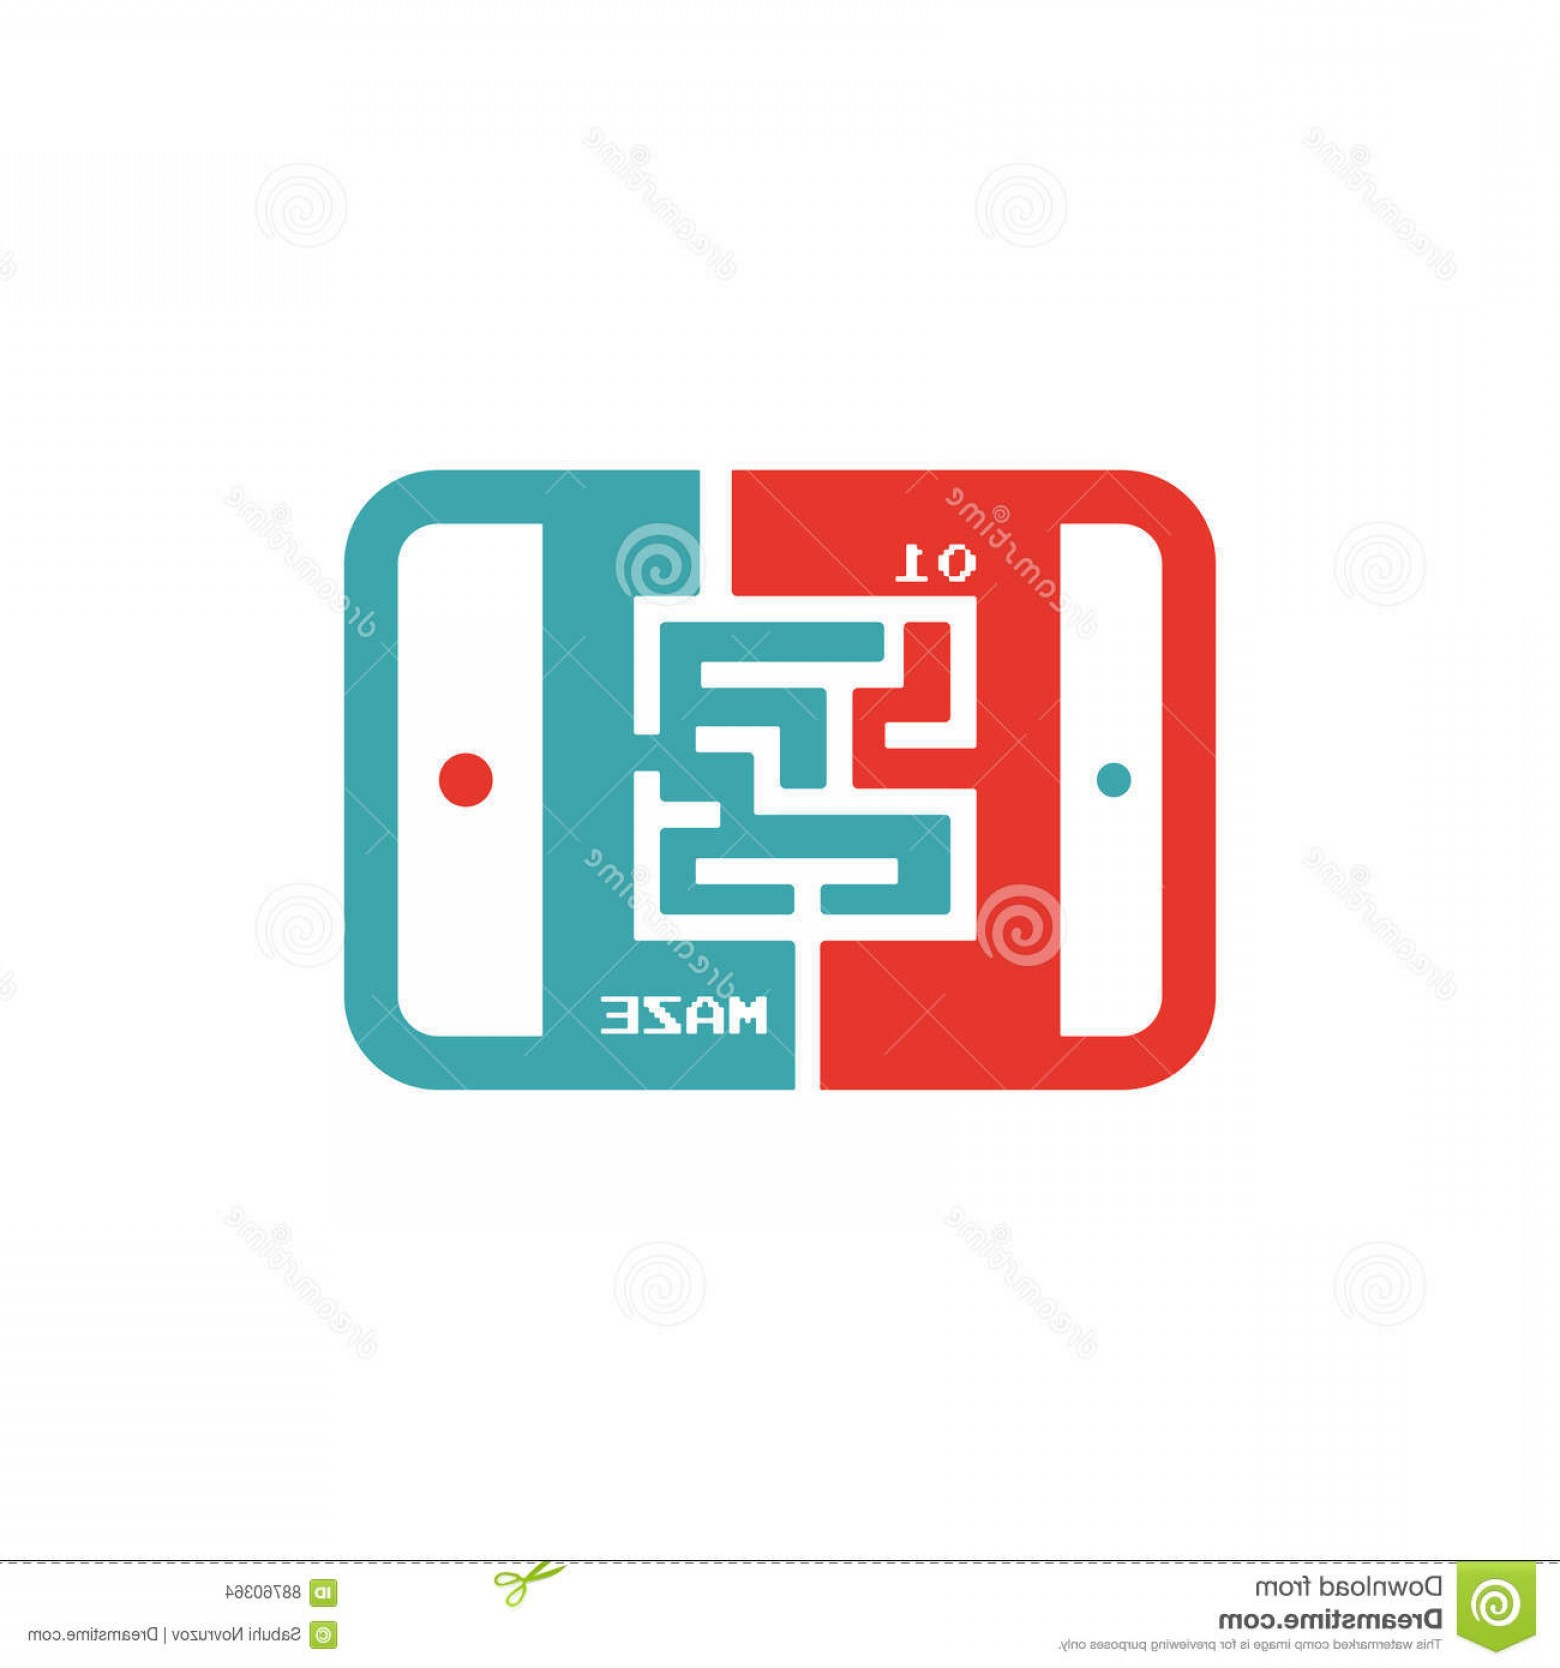 Vector The Game On PC: Stock Illustration Kiev Ukraine Avgust Game Maze Labyrinth Icon Tablet Pc Vector Illustration Image Laptop Red Blue Image